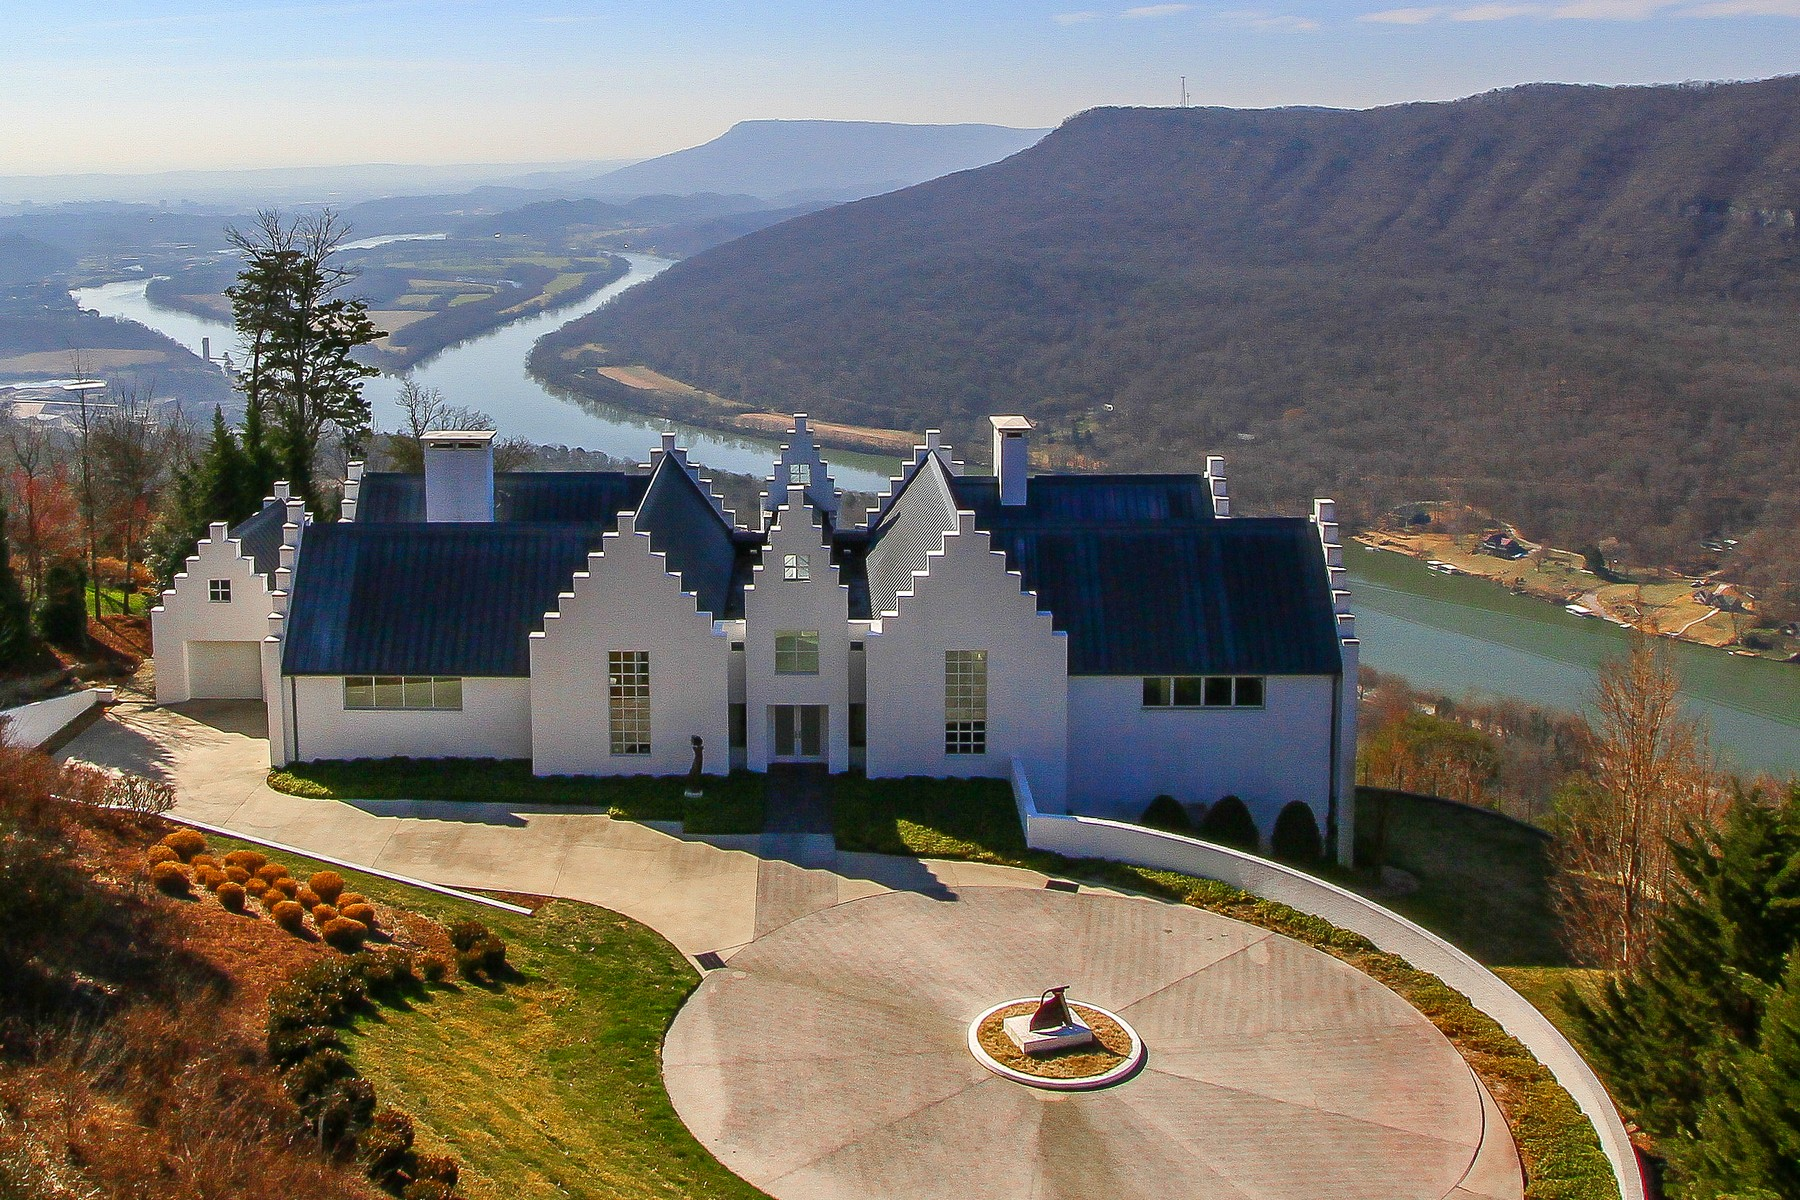 Single Family Home for Sale at Sweeping Views of the Tennessee River Gorge 8 Close Family Road Signal Mountain, Tennessee 37377 United States